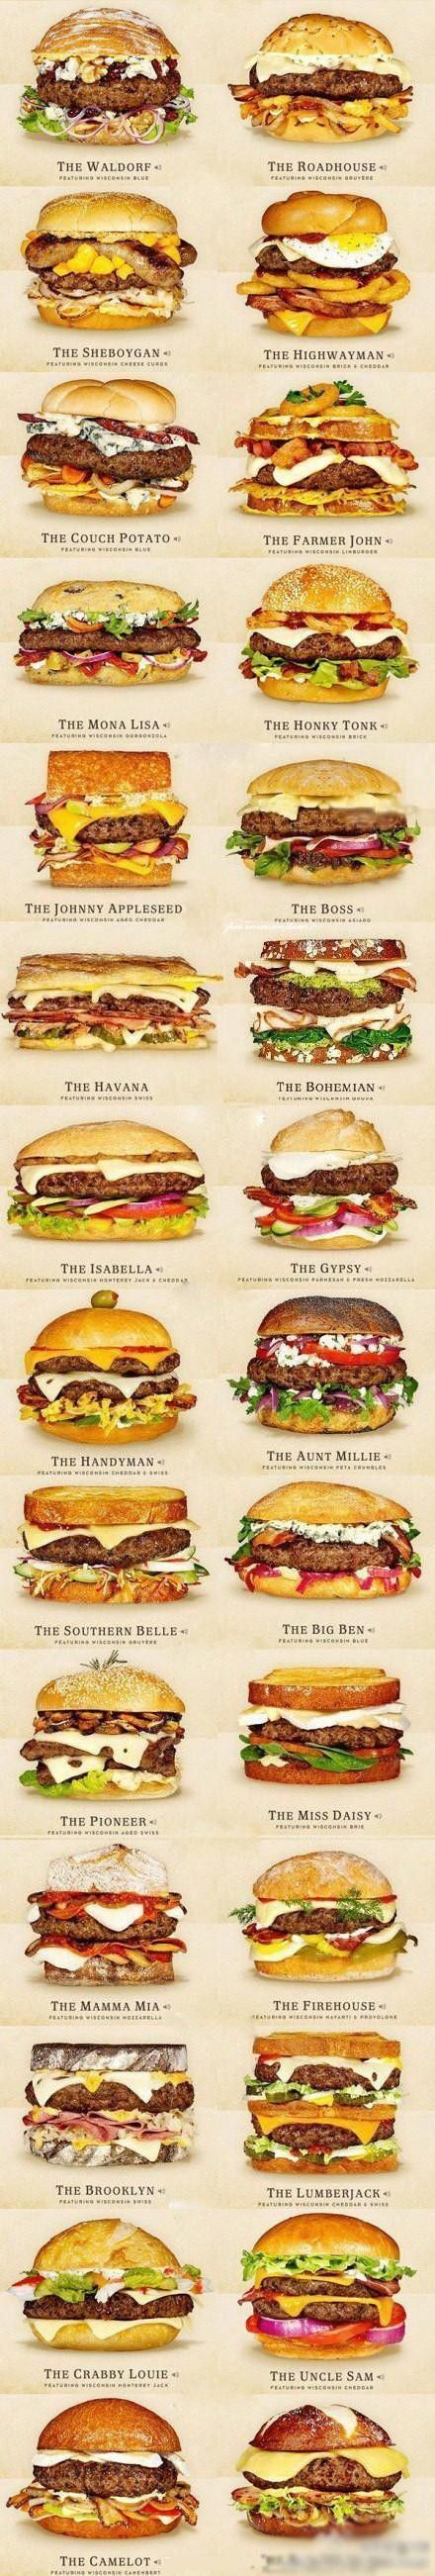 Cheeseburger Inspiration. Let this infographic be your grilling muse.